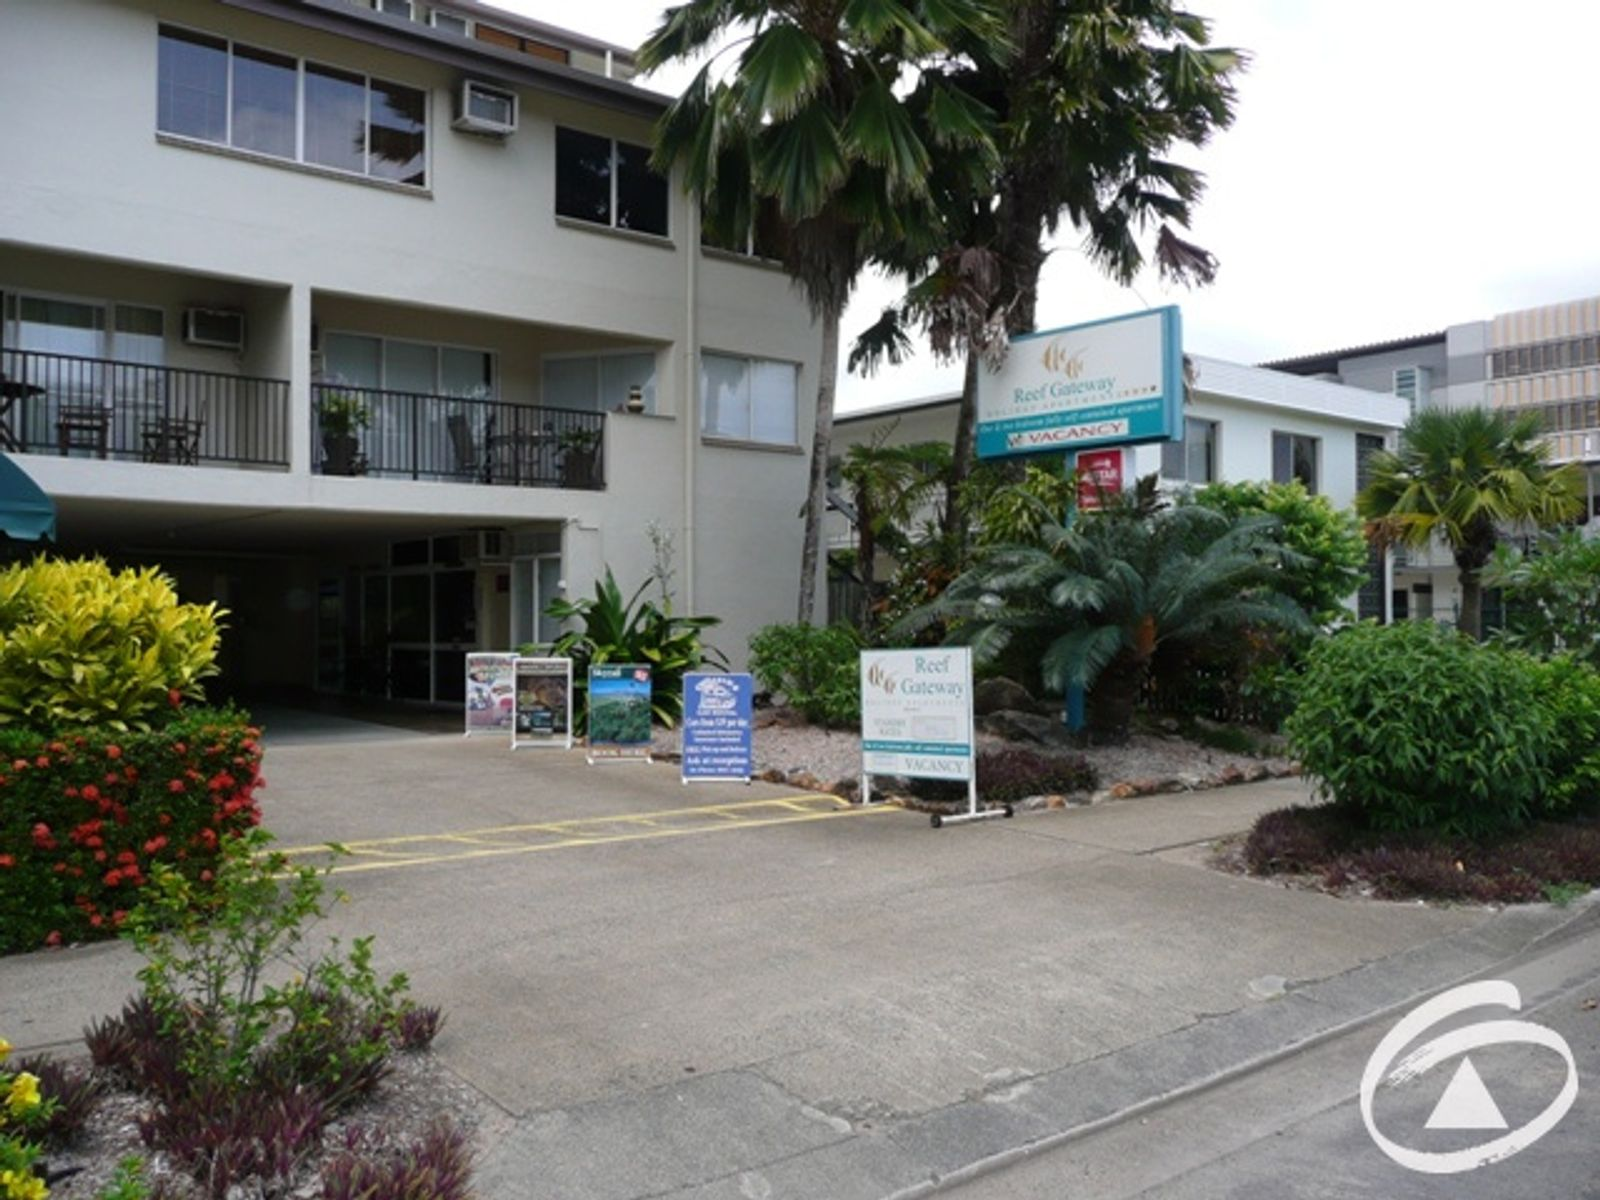 16/239 Lake Street, Cairns North, QLD 4870